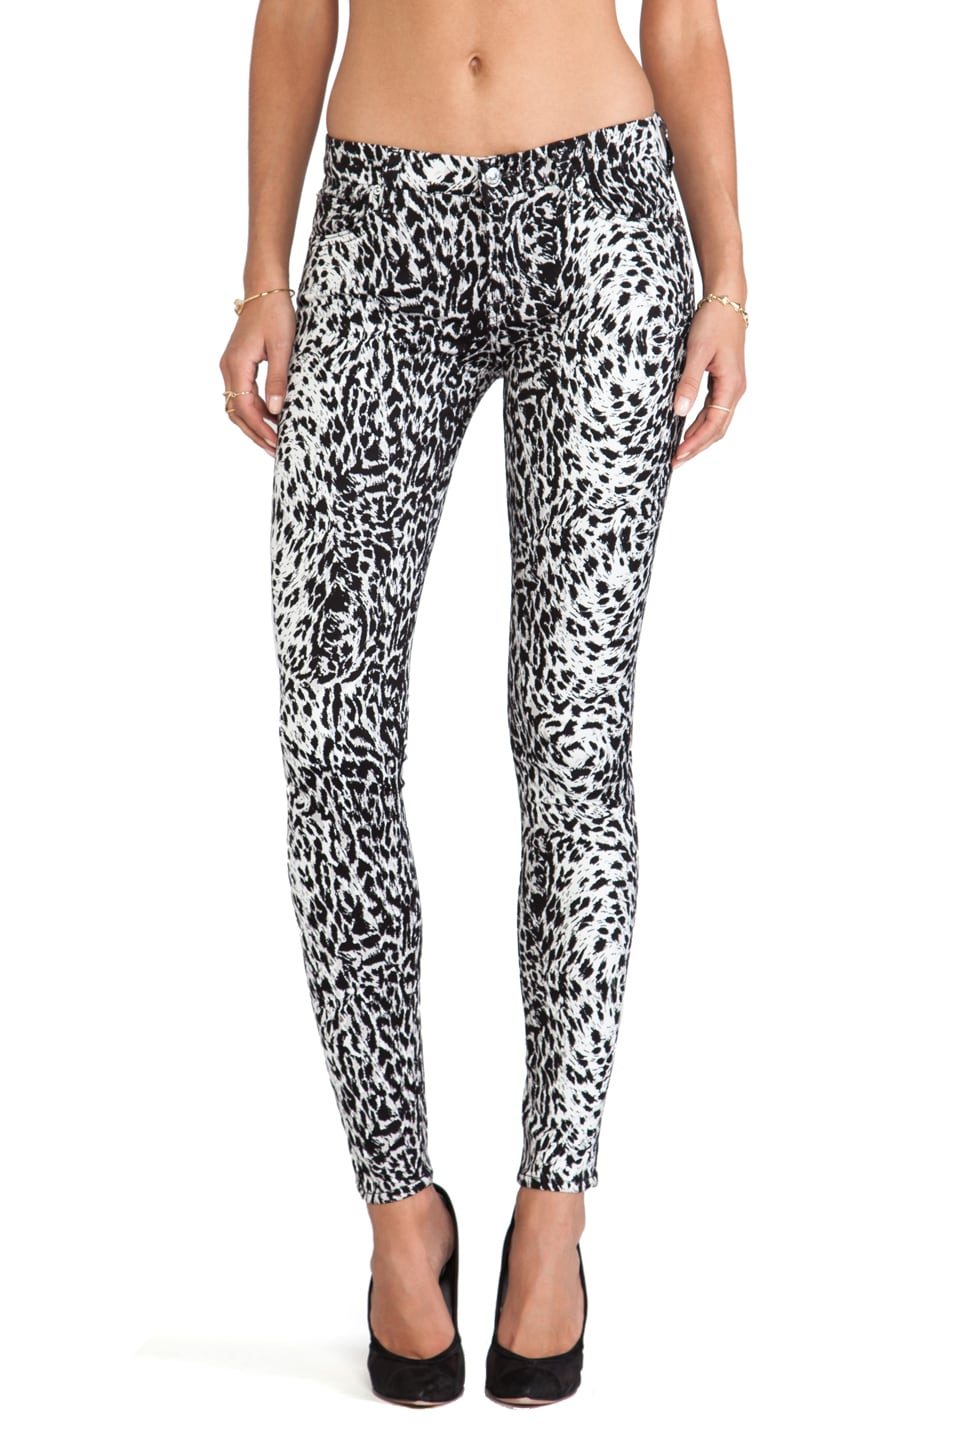 7 For All Mankind The Skinny Print in Snow Leopard